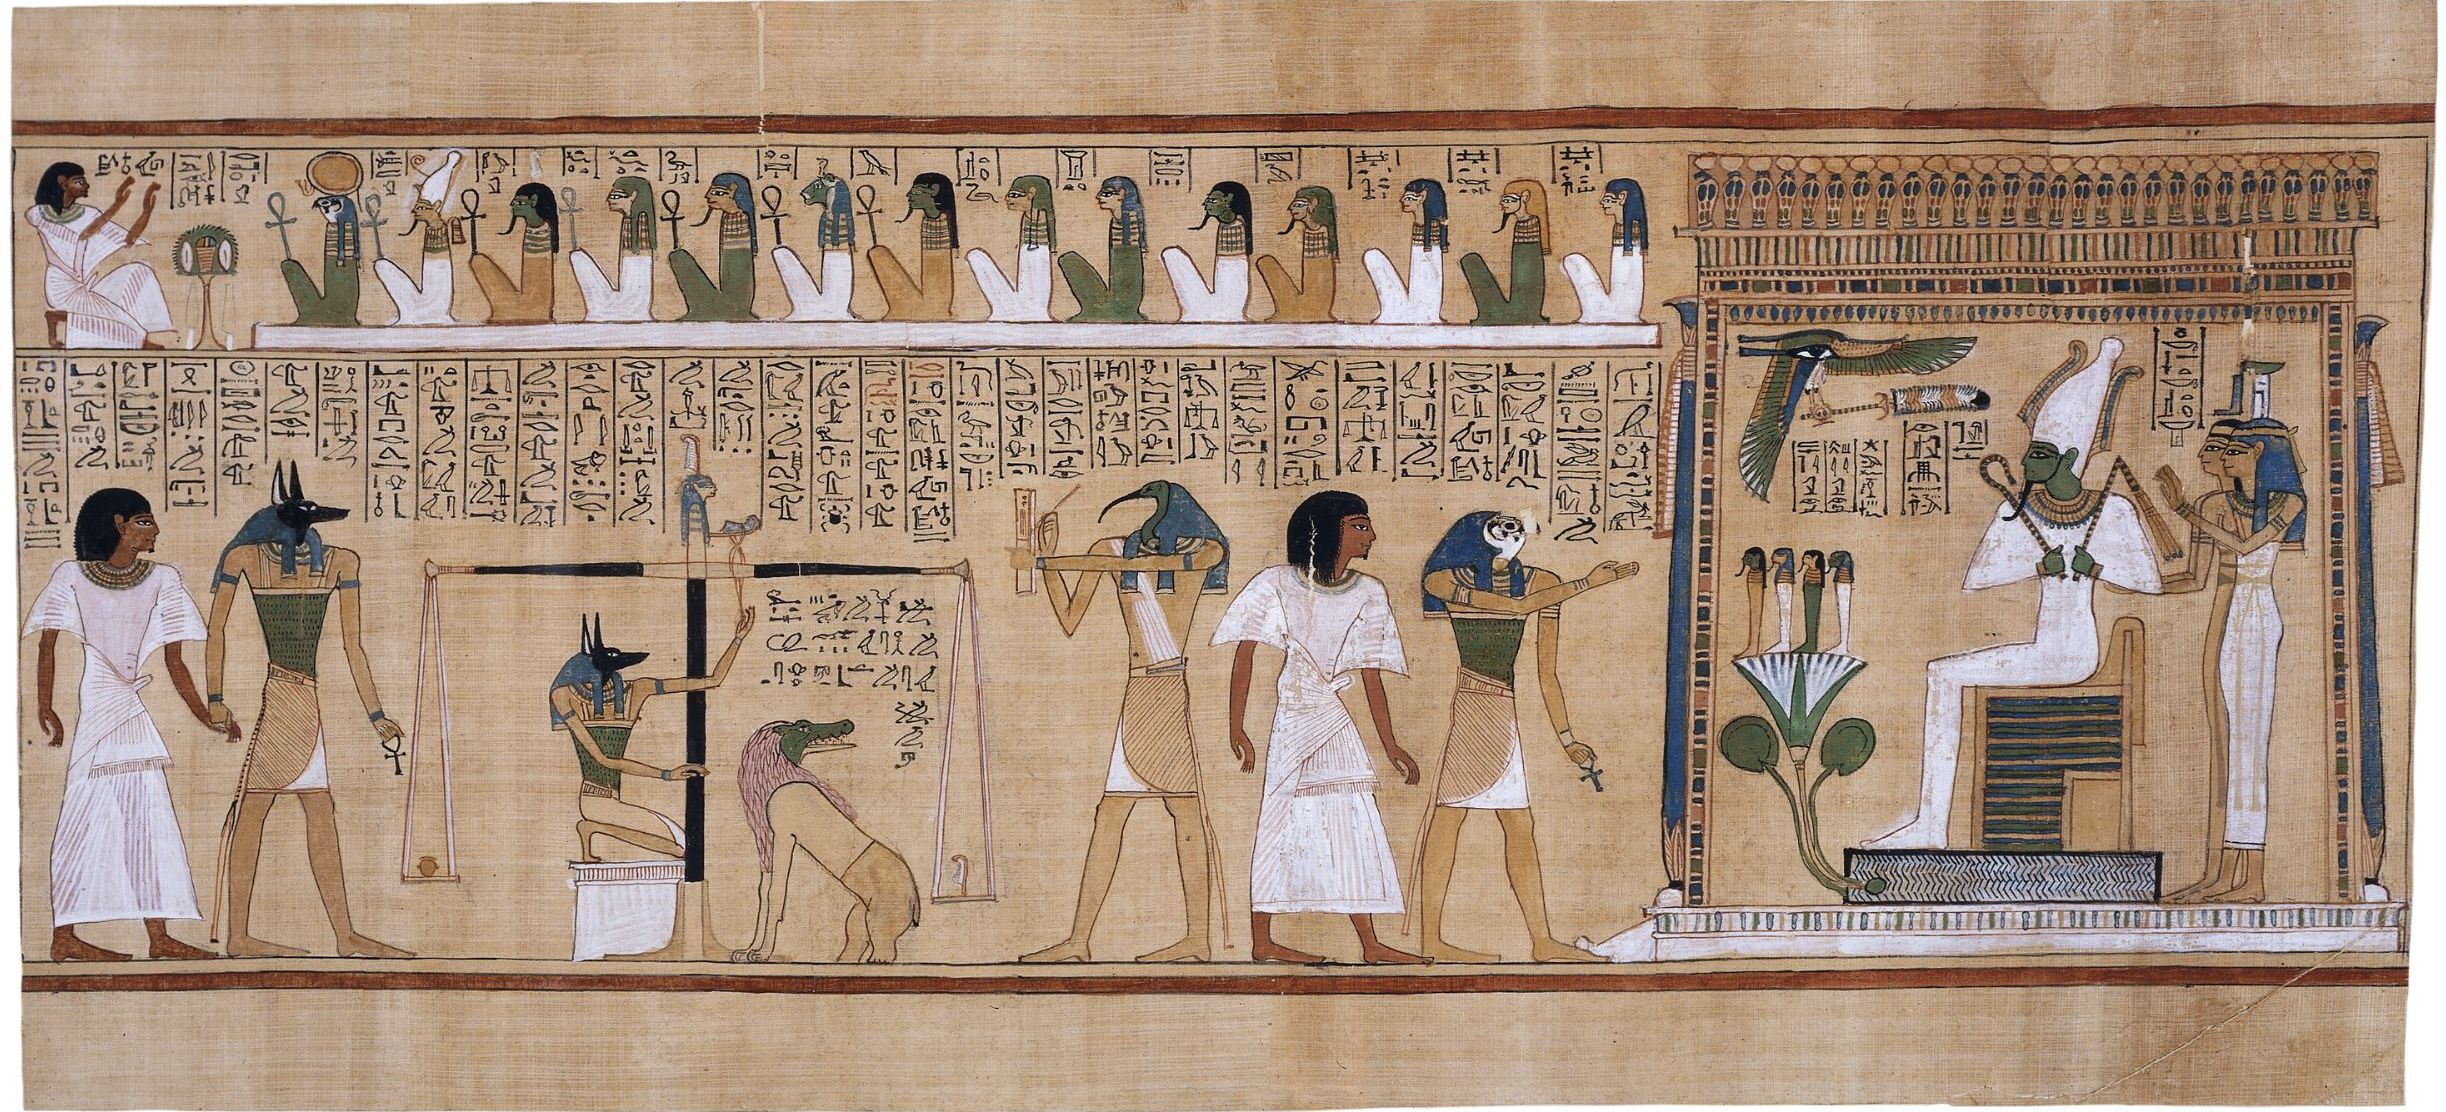 Judgement scene from the Book of the Dead